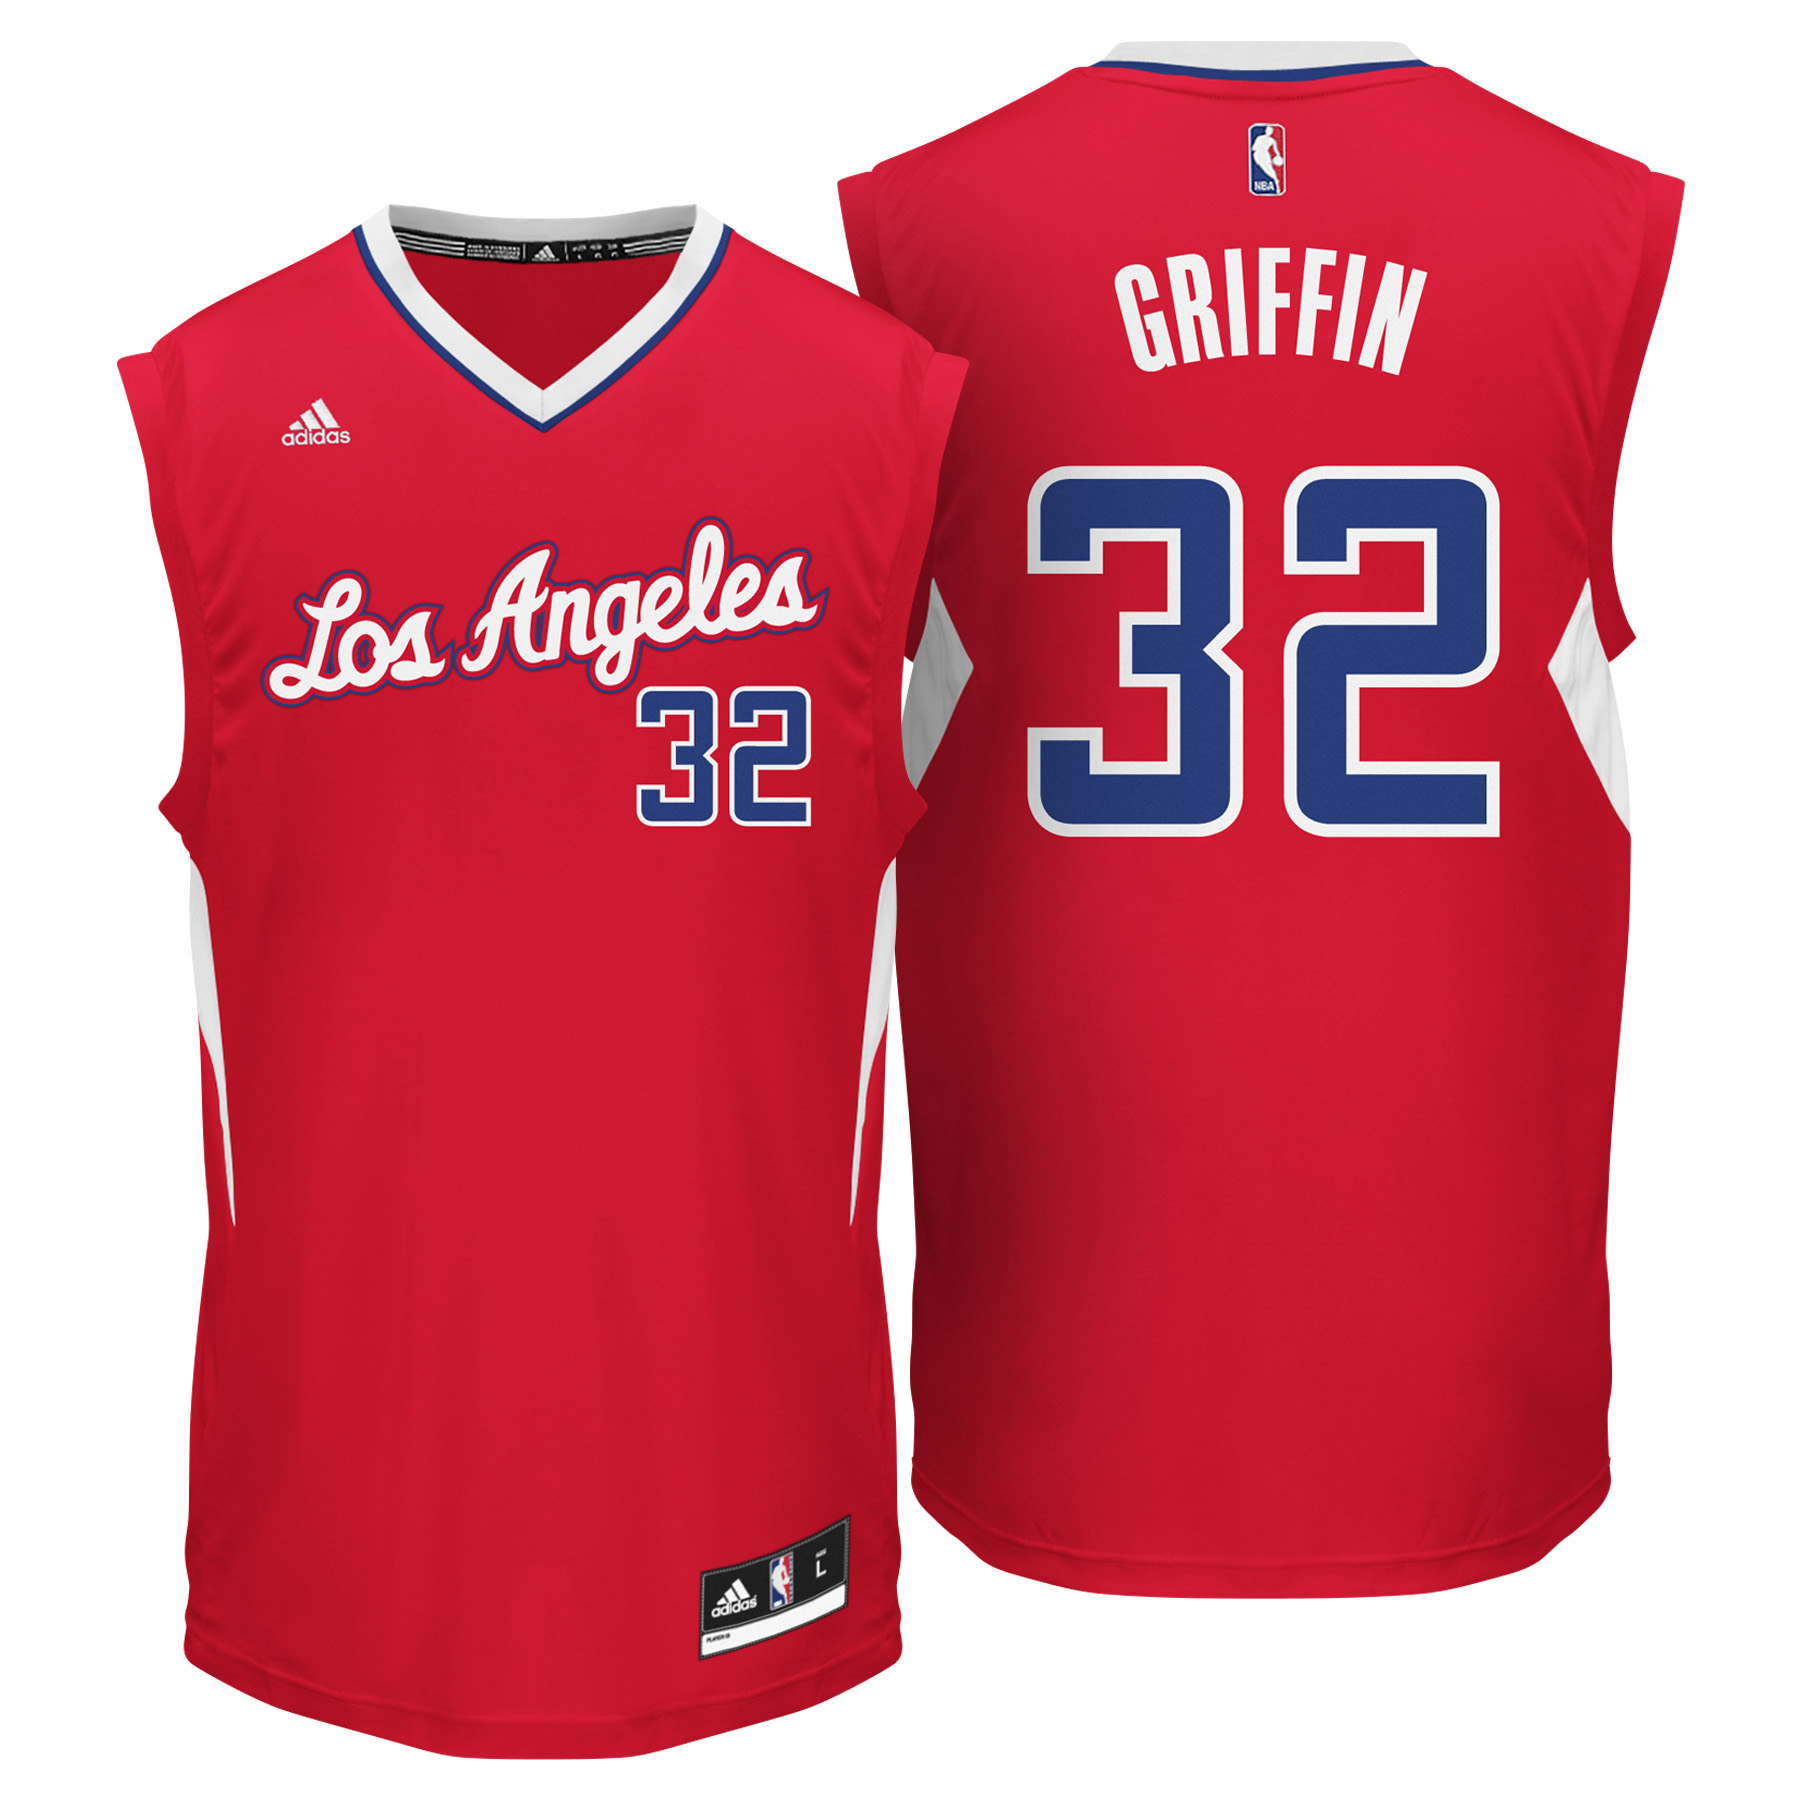 Los Angeles Clippers Road Replica Jersey - Blake Griffin - Mens